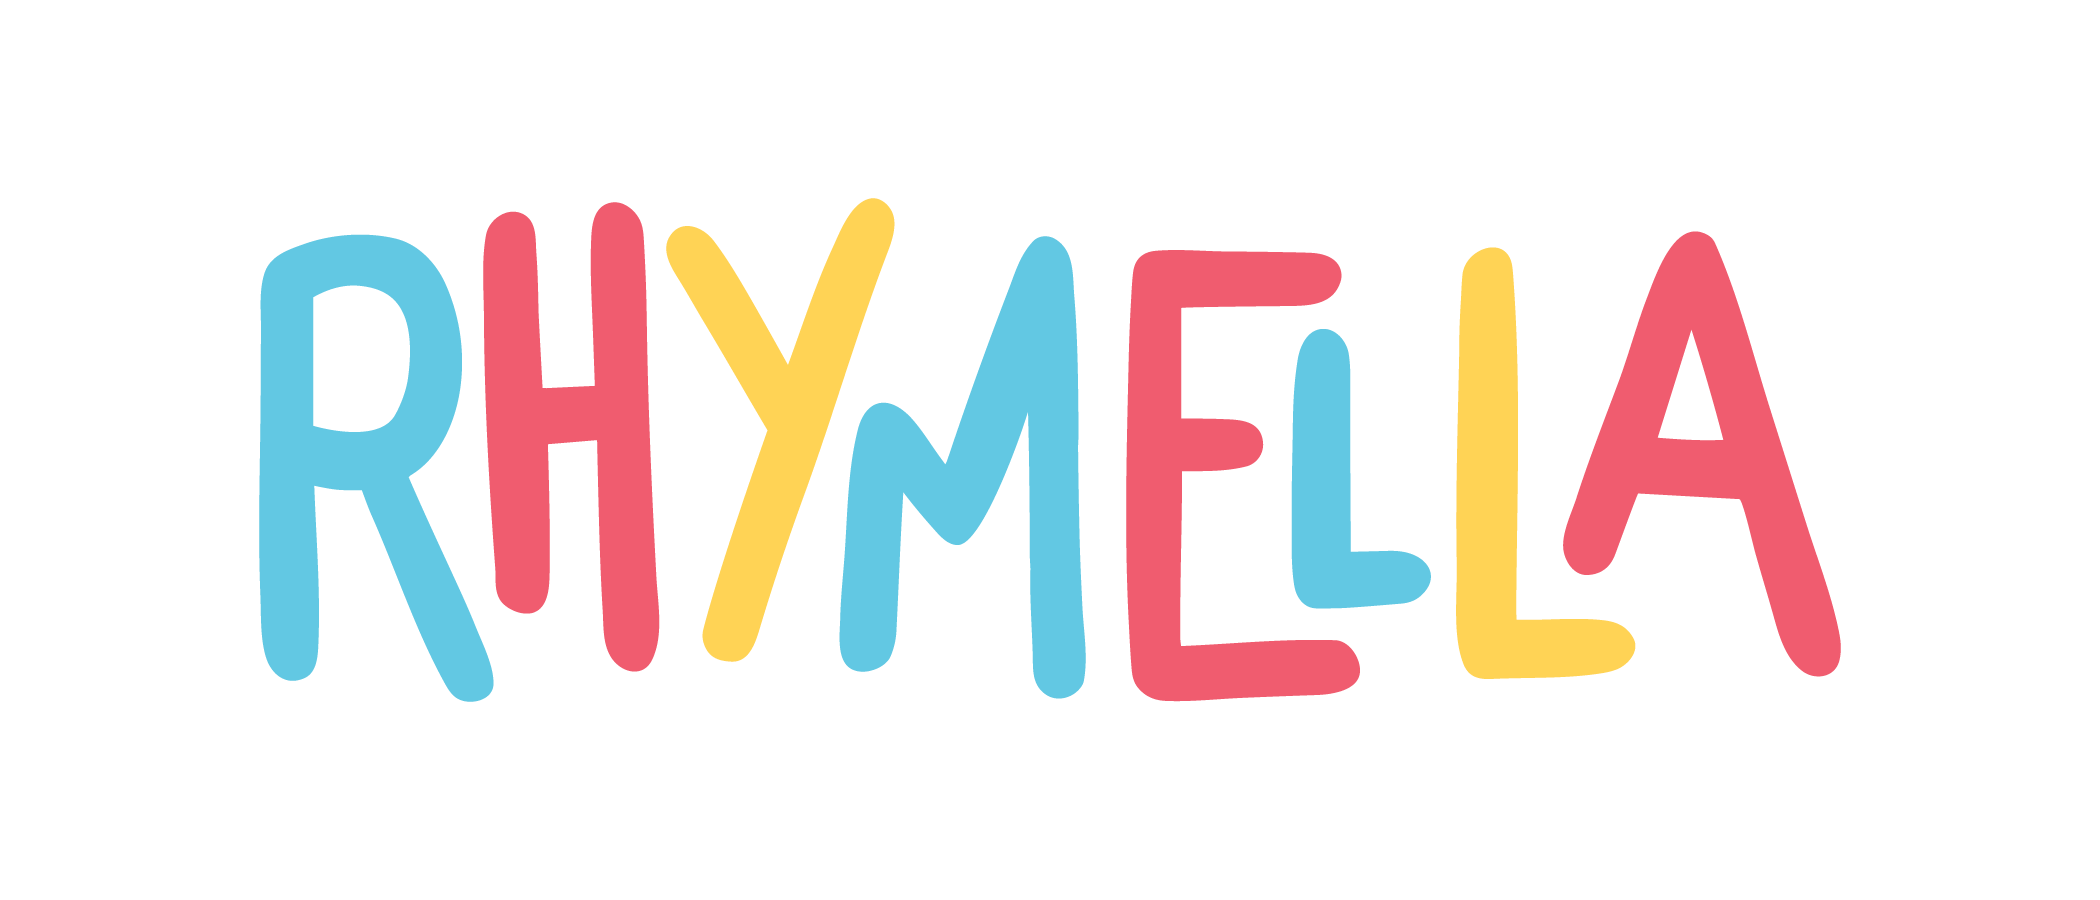 Rhymella final logo 052218 color